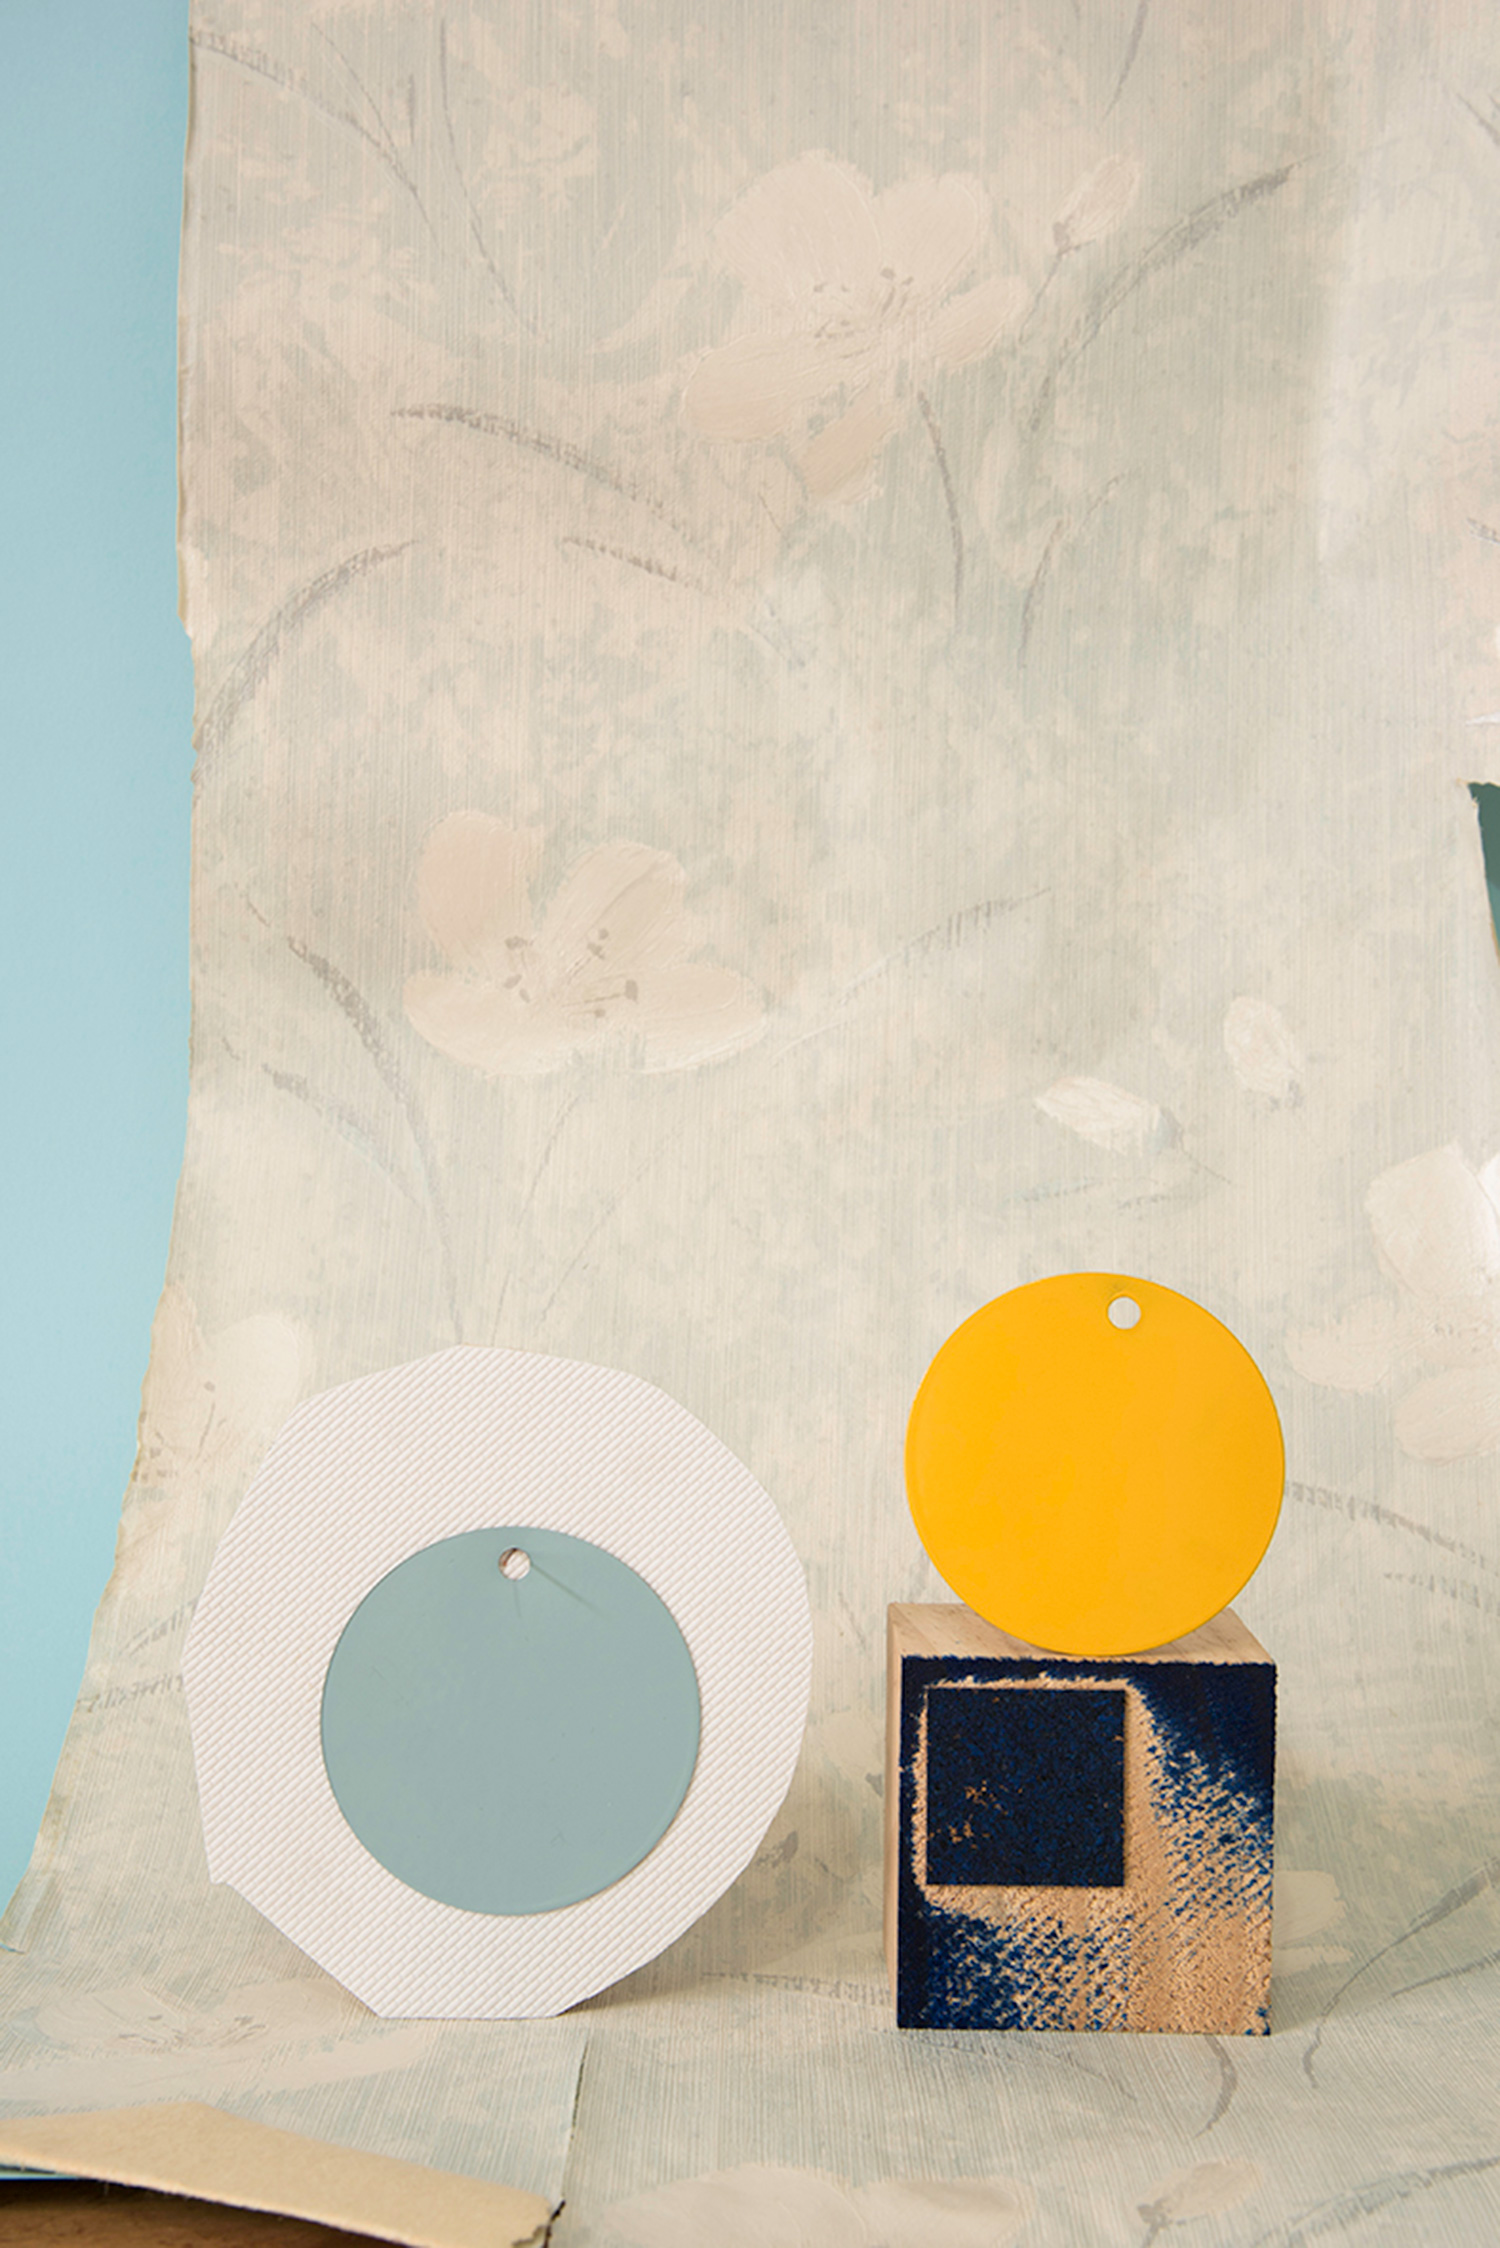 Hardbody Sculpture XI (Wallpaper, blue stamp, blue and white discs and yellow disc)